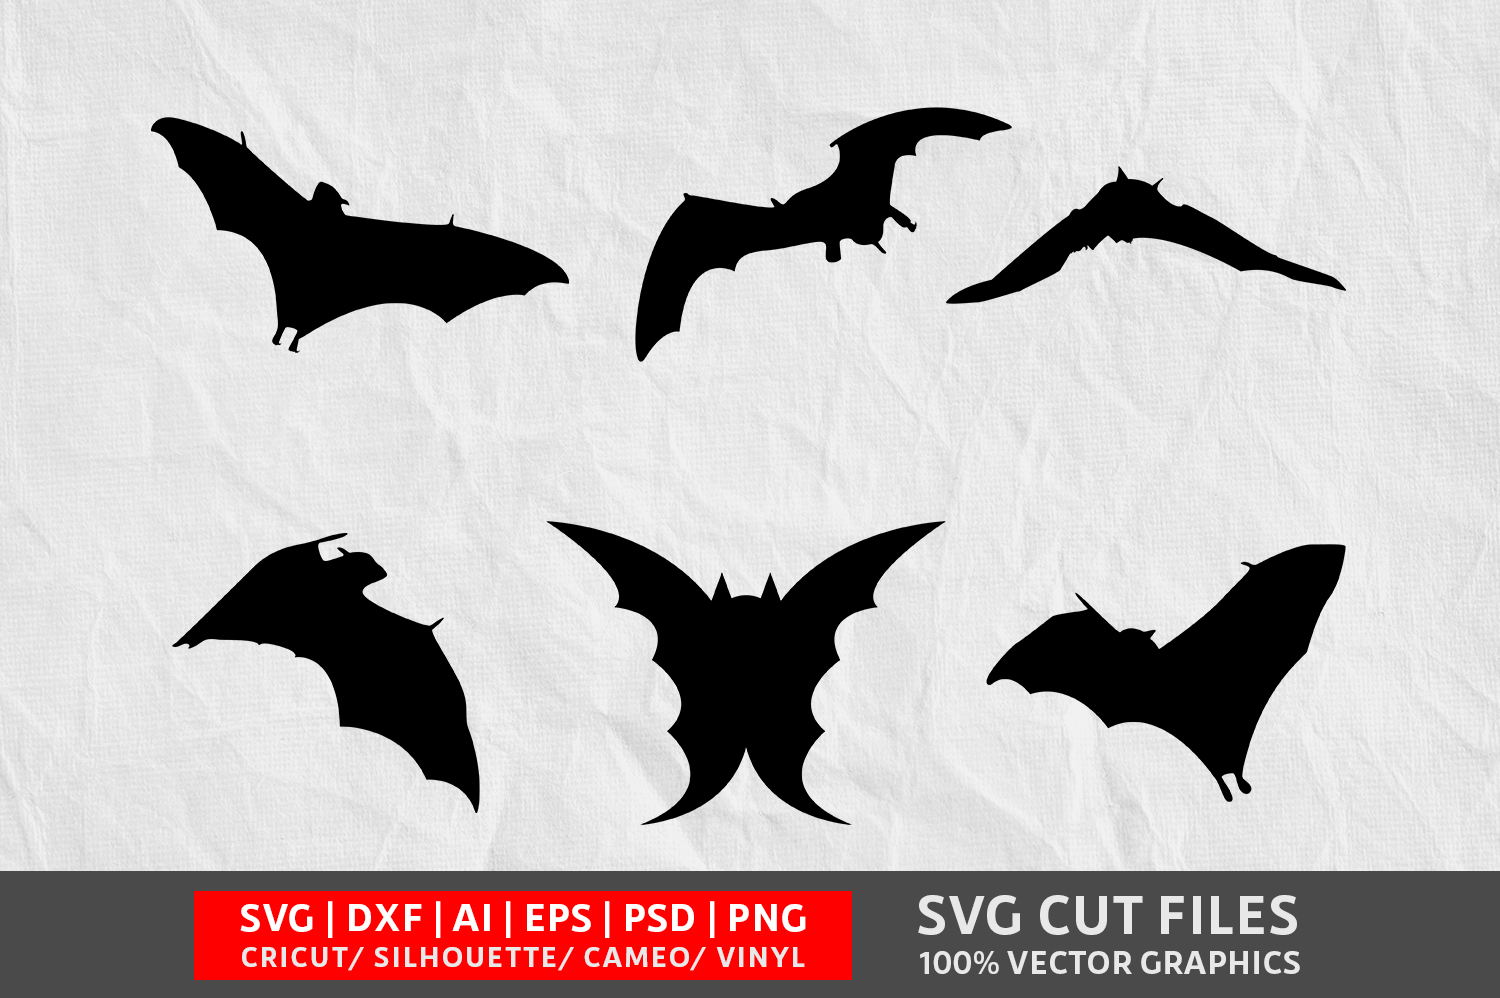 Download Free Bat Image Graphic By Design Palace Creative Fabrica for Cricut Explore, Silhouette and other cutting machines.